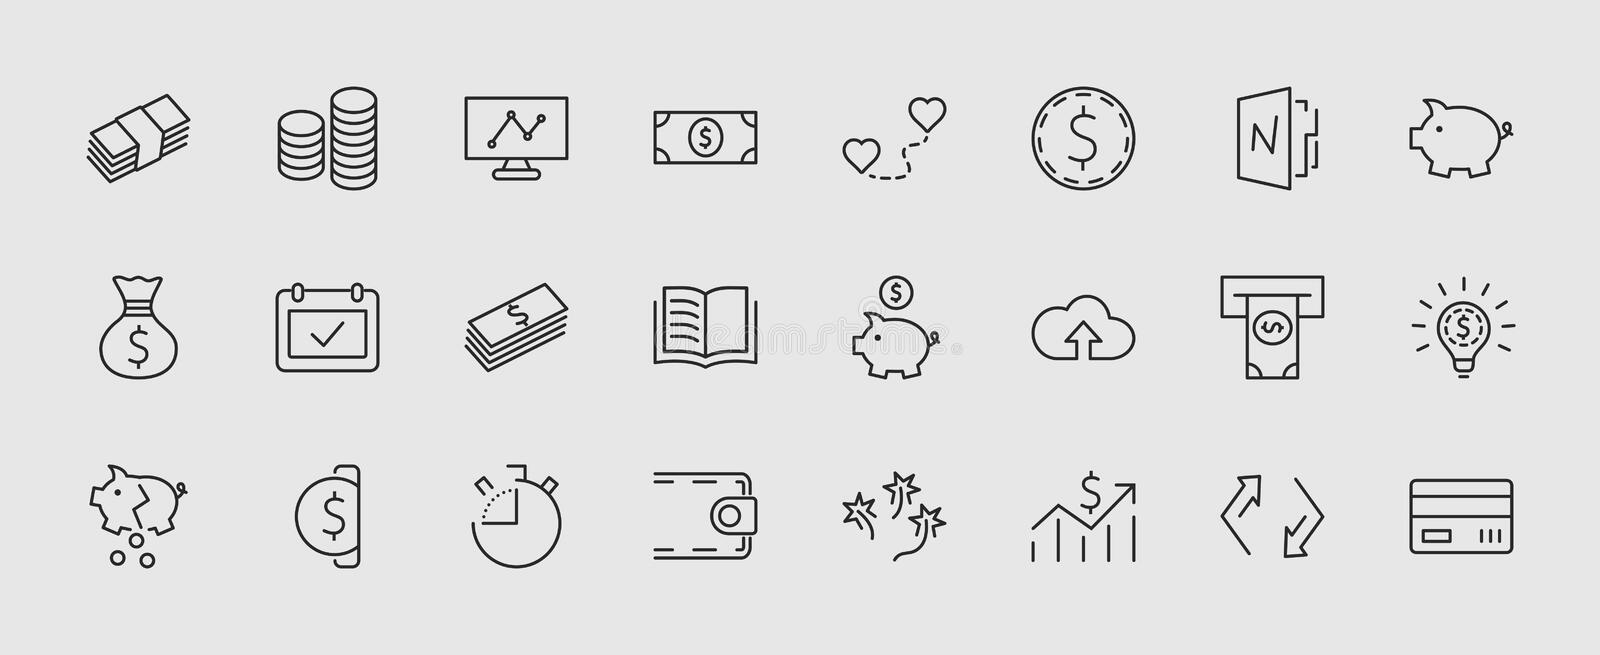 Set of Money Related Vector Line Icons. Contains such Icons as Money Bag, Piggy Bank in the form of a Pig, Wallet, ATM royalty free illustration